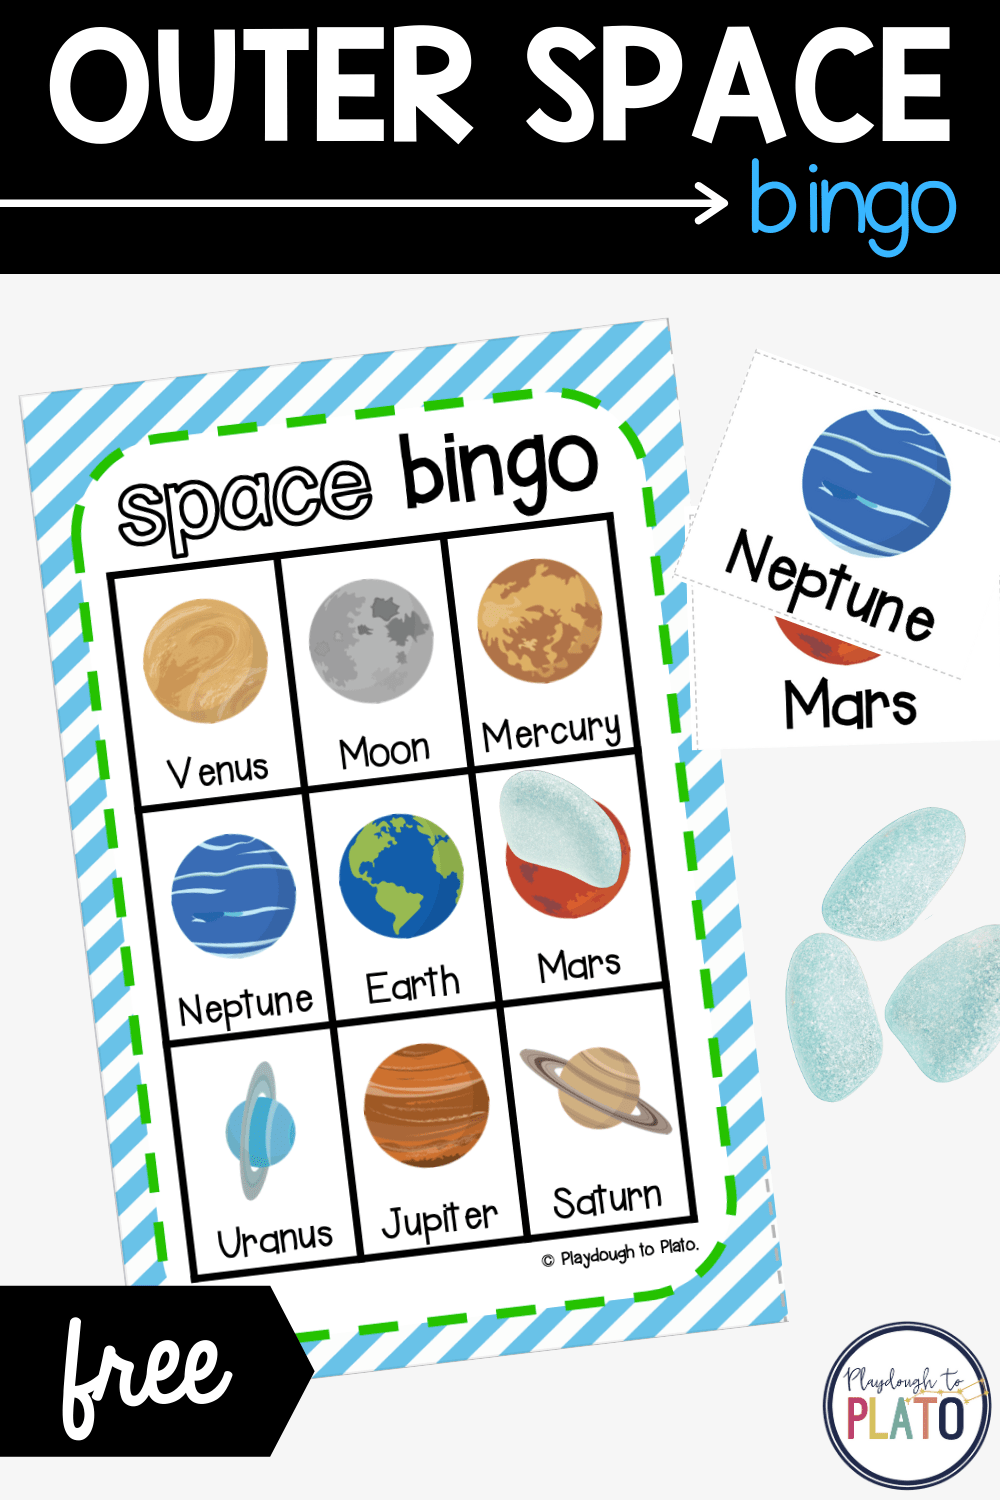 Outer Space Kids' Bingo